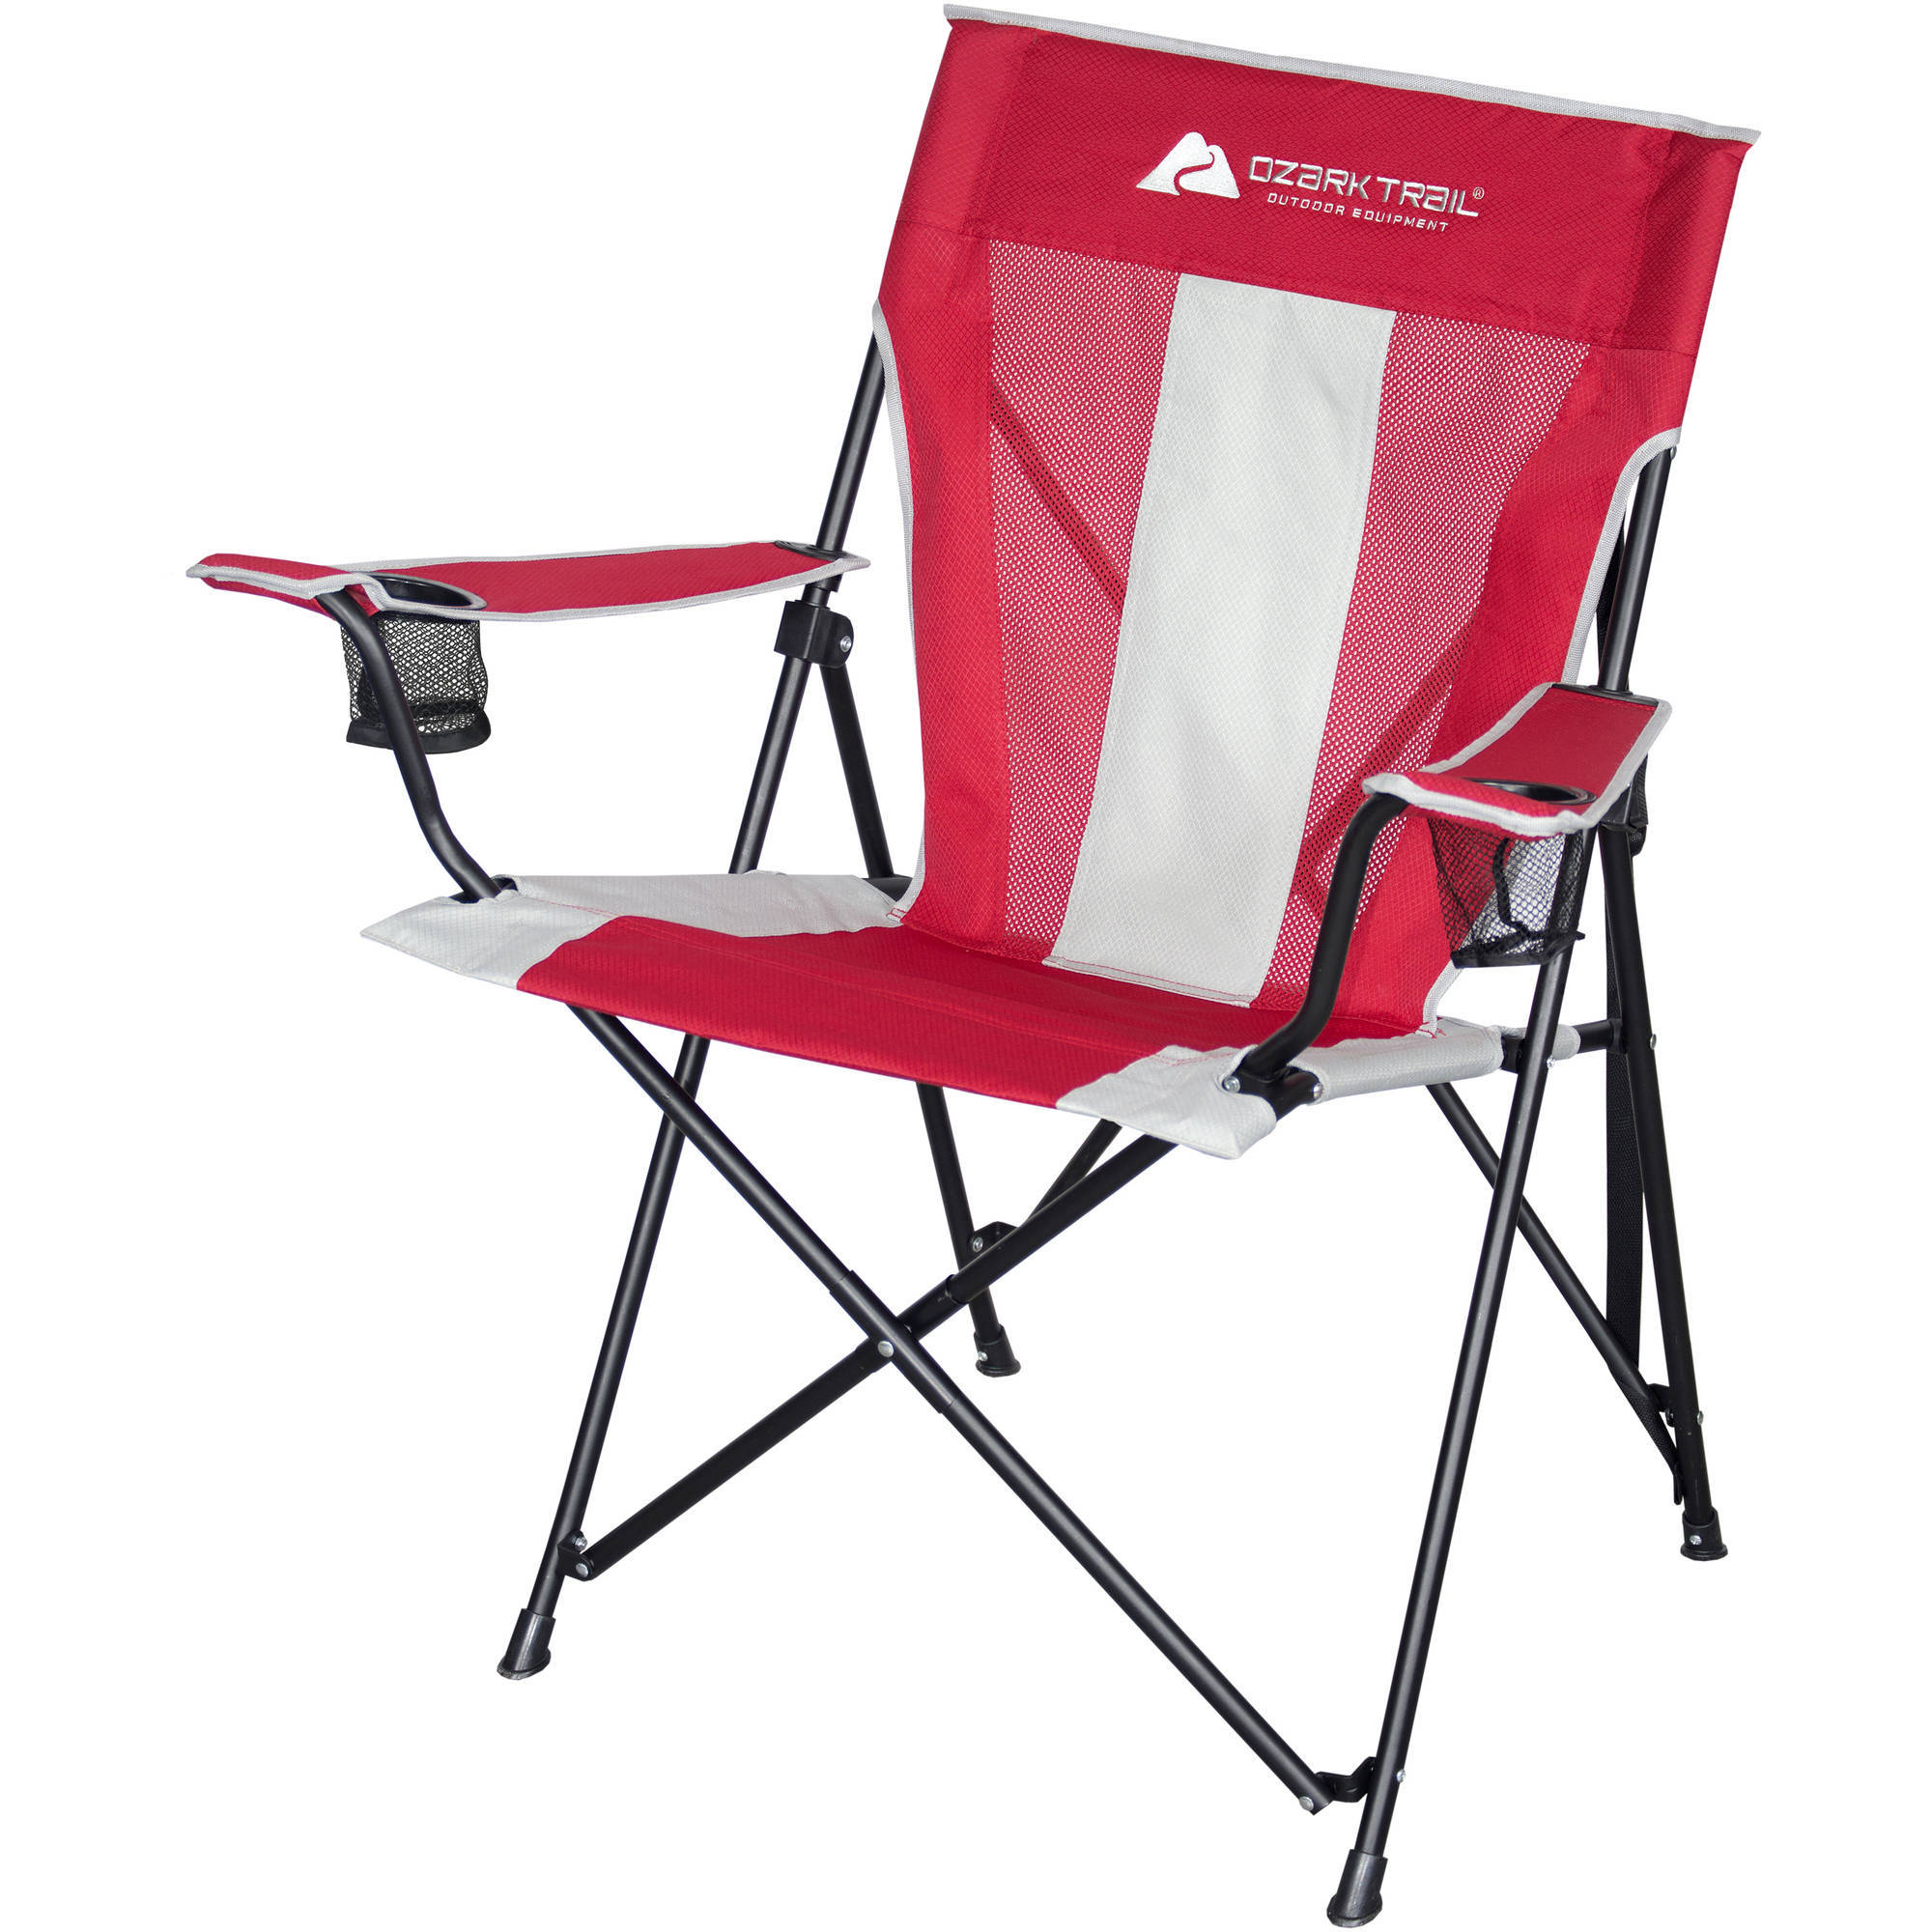 Ozark Trail Tension Camp Chair, Red